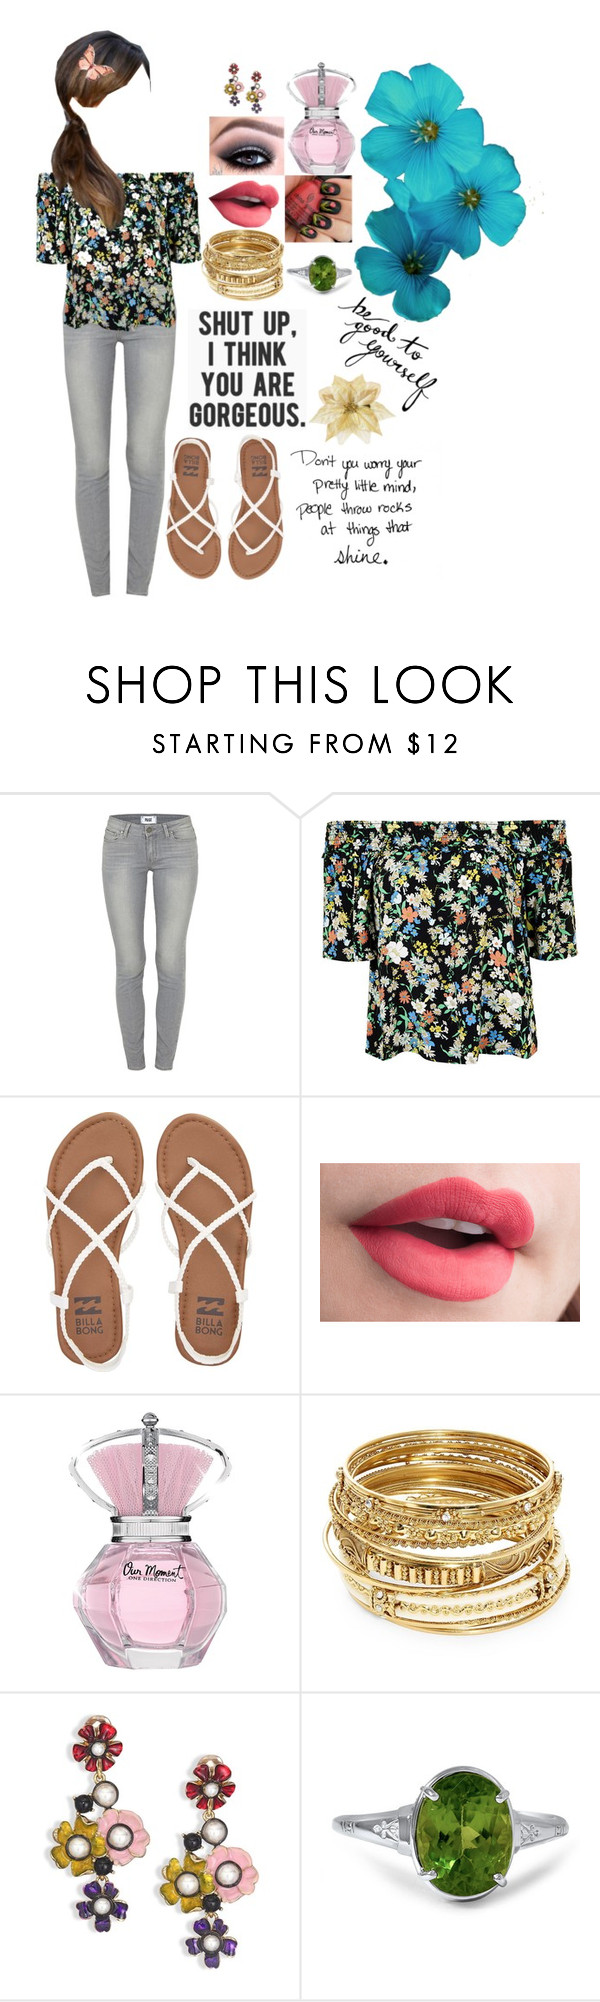 """Untitled #218"" by lil1daffodil2baby3girl4 ❤ liked on Polyvore featuring Paige Denim, Topshop, Billabong, ABS by Allen Schwartz and Oscar de la Renta"